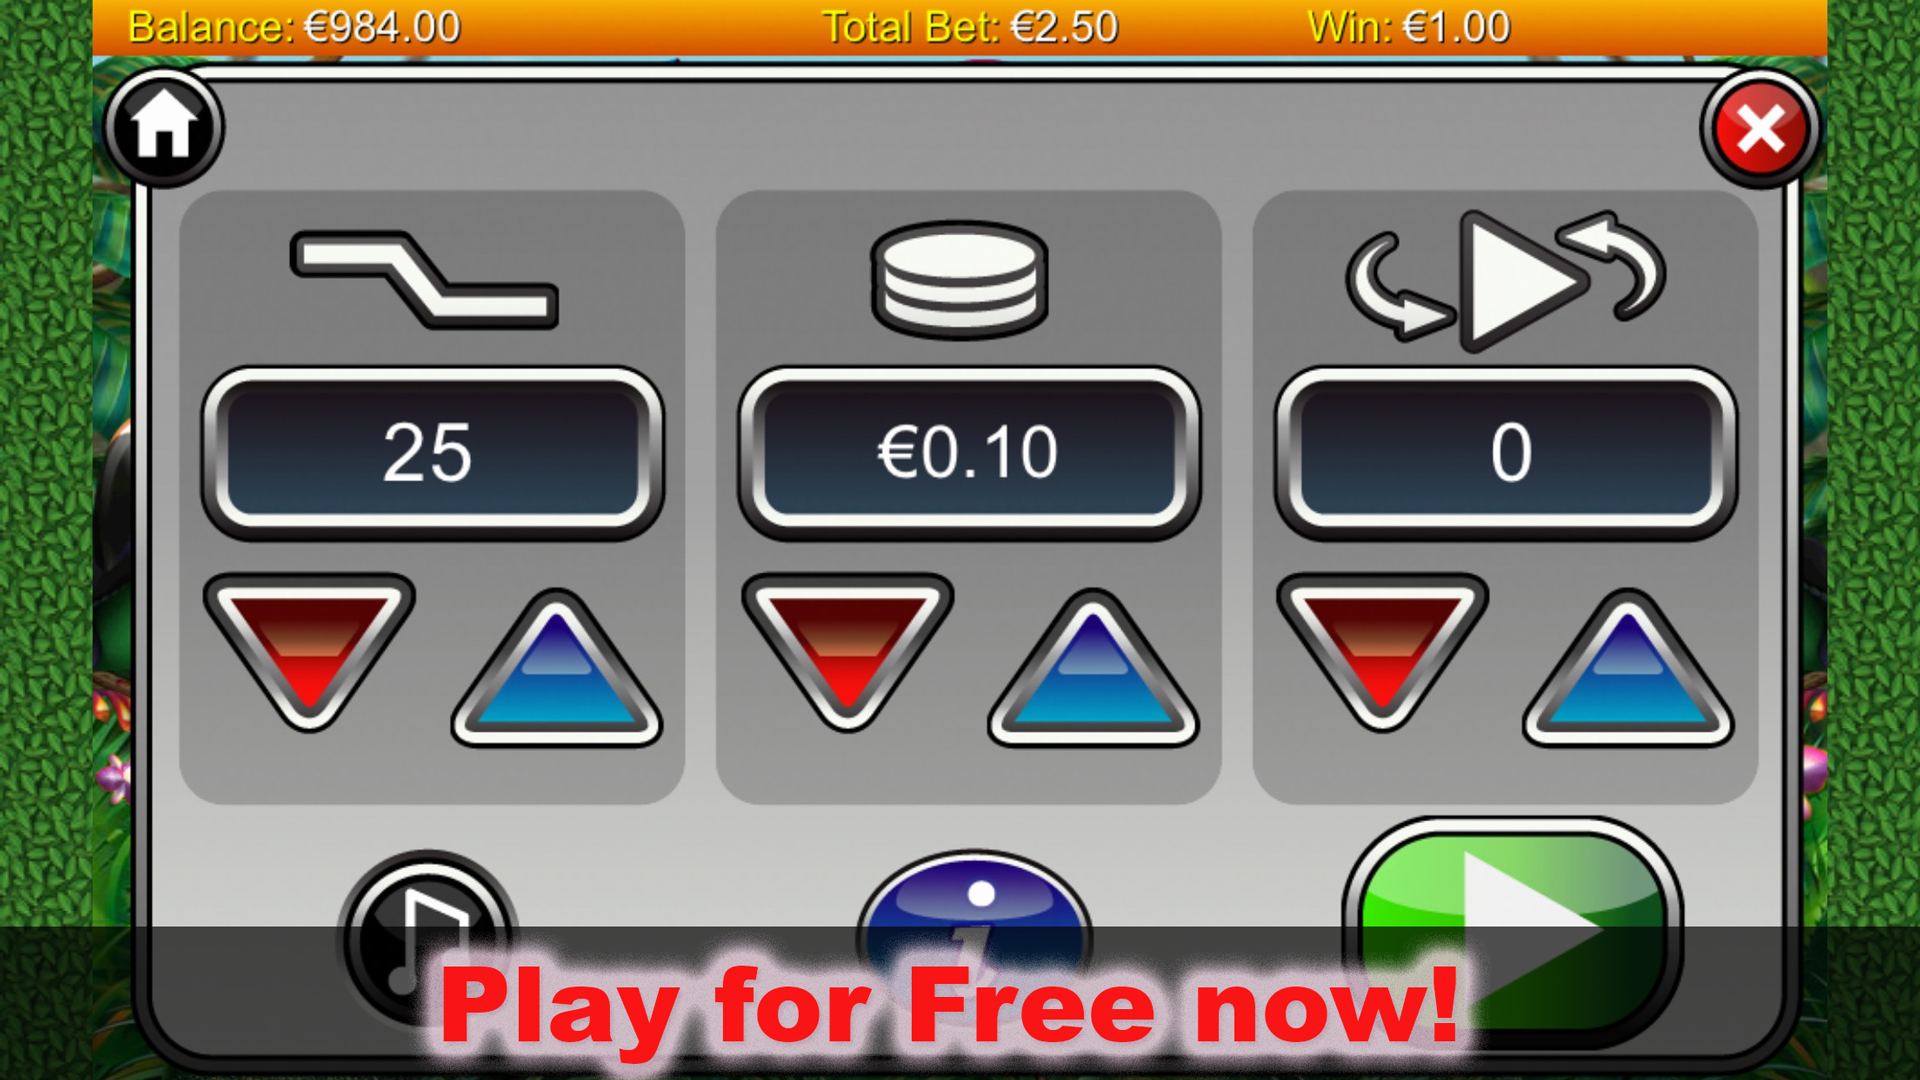 casino online bonus na start